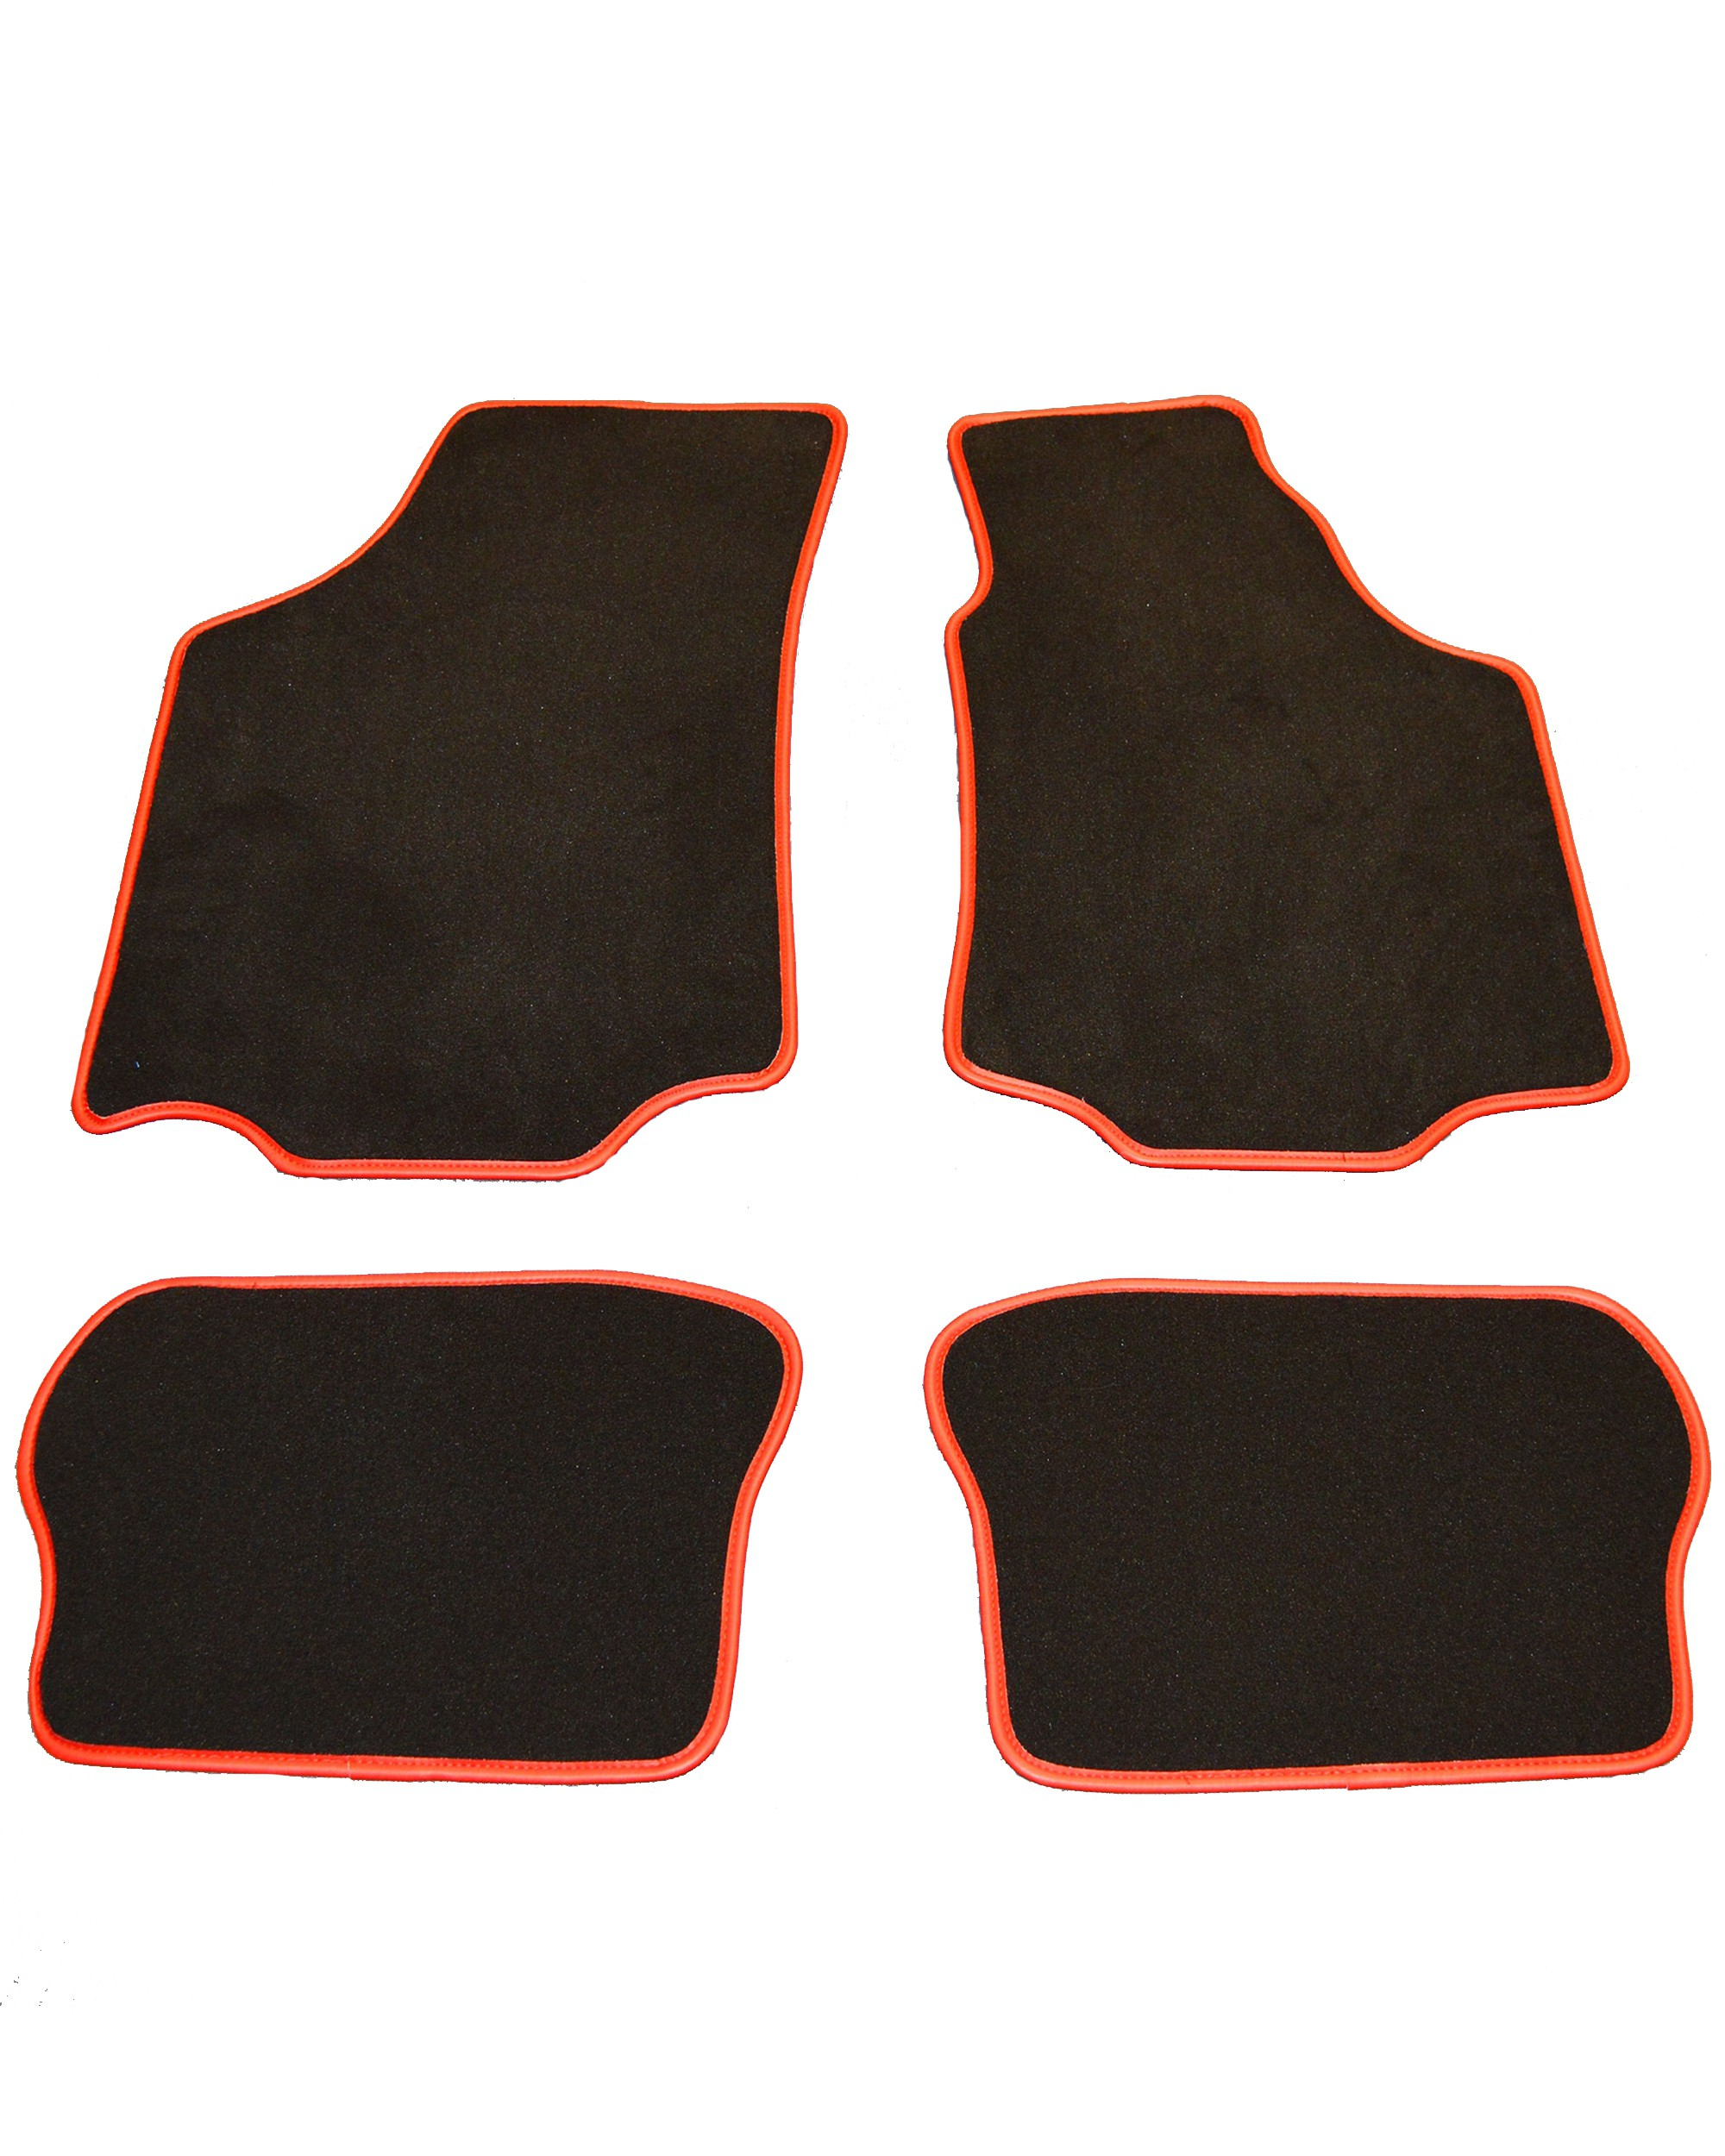 Volkswagen VW Golf MK3 Tailored Luxury Car Floor Mats For GTI & VR6